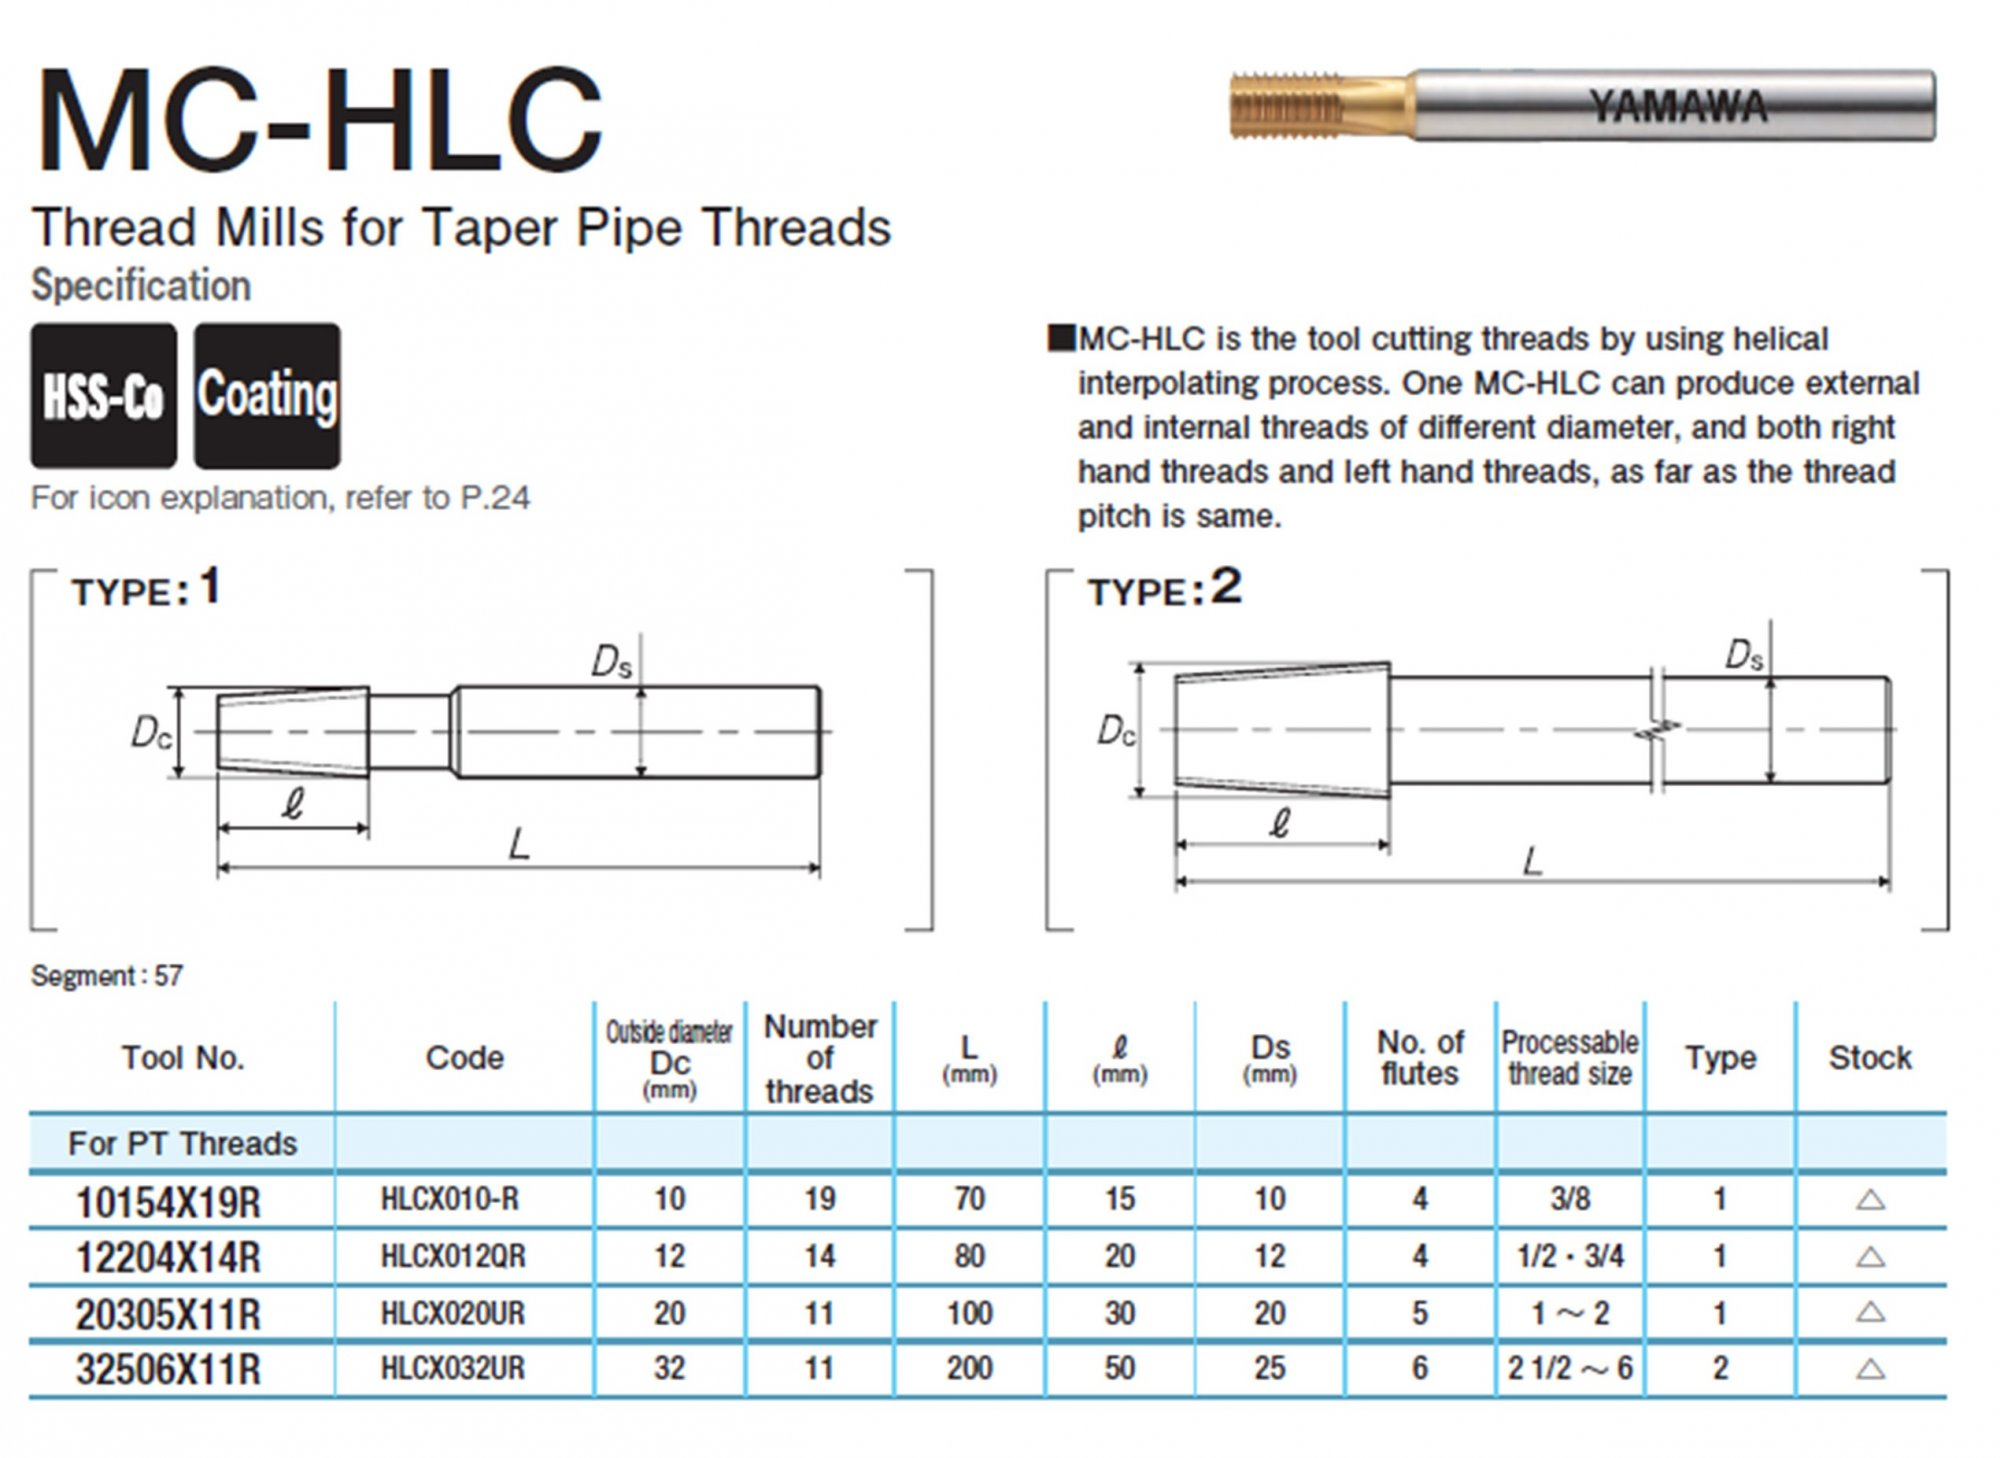 Thread-Mills-for-Taper-Pipe-Threads-MC-HLC-02